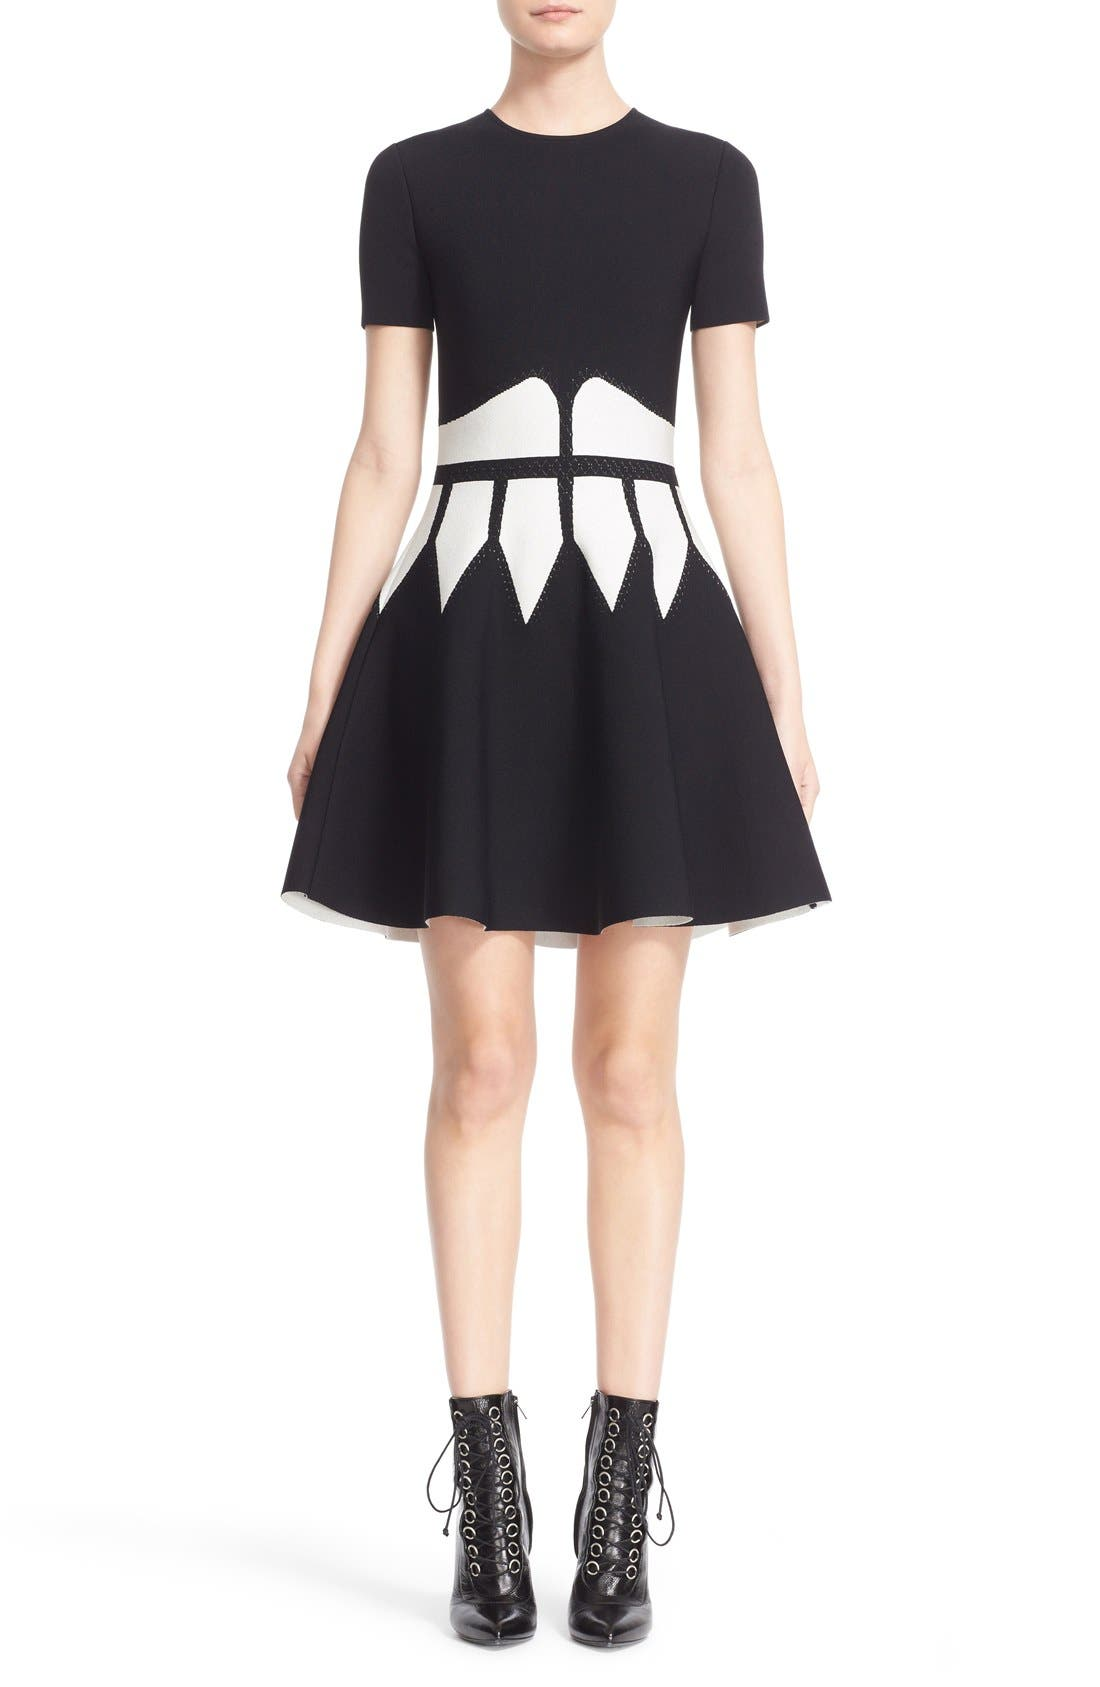 Alternate Image 1 Selected - Alexander McQueen Intarsia Knit Fit & Flare Dress